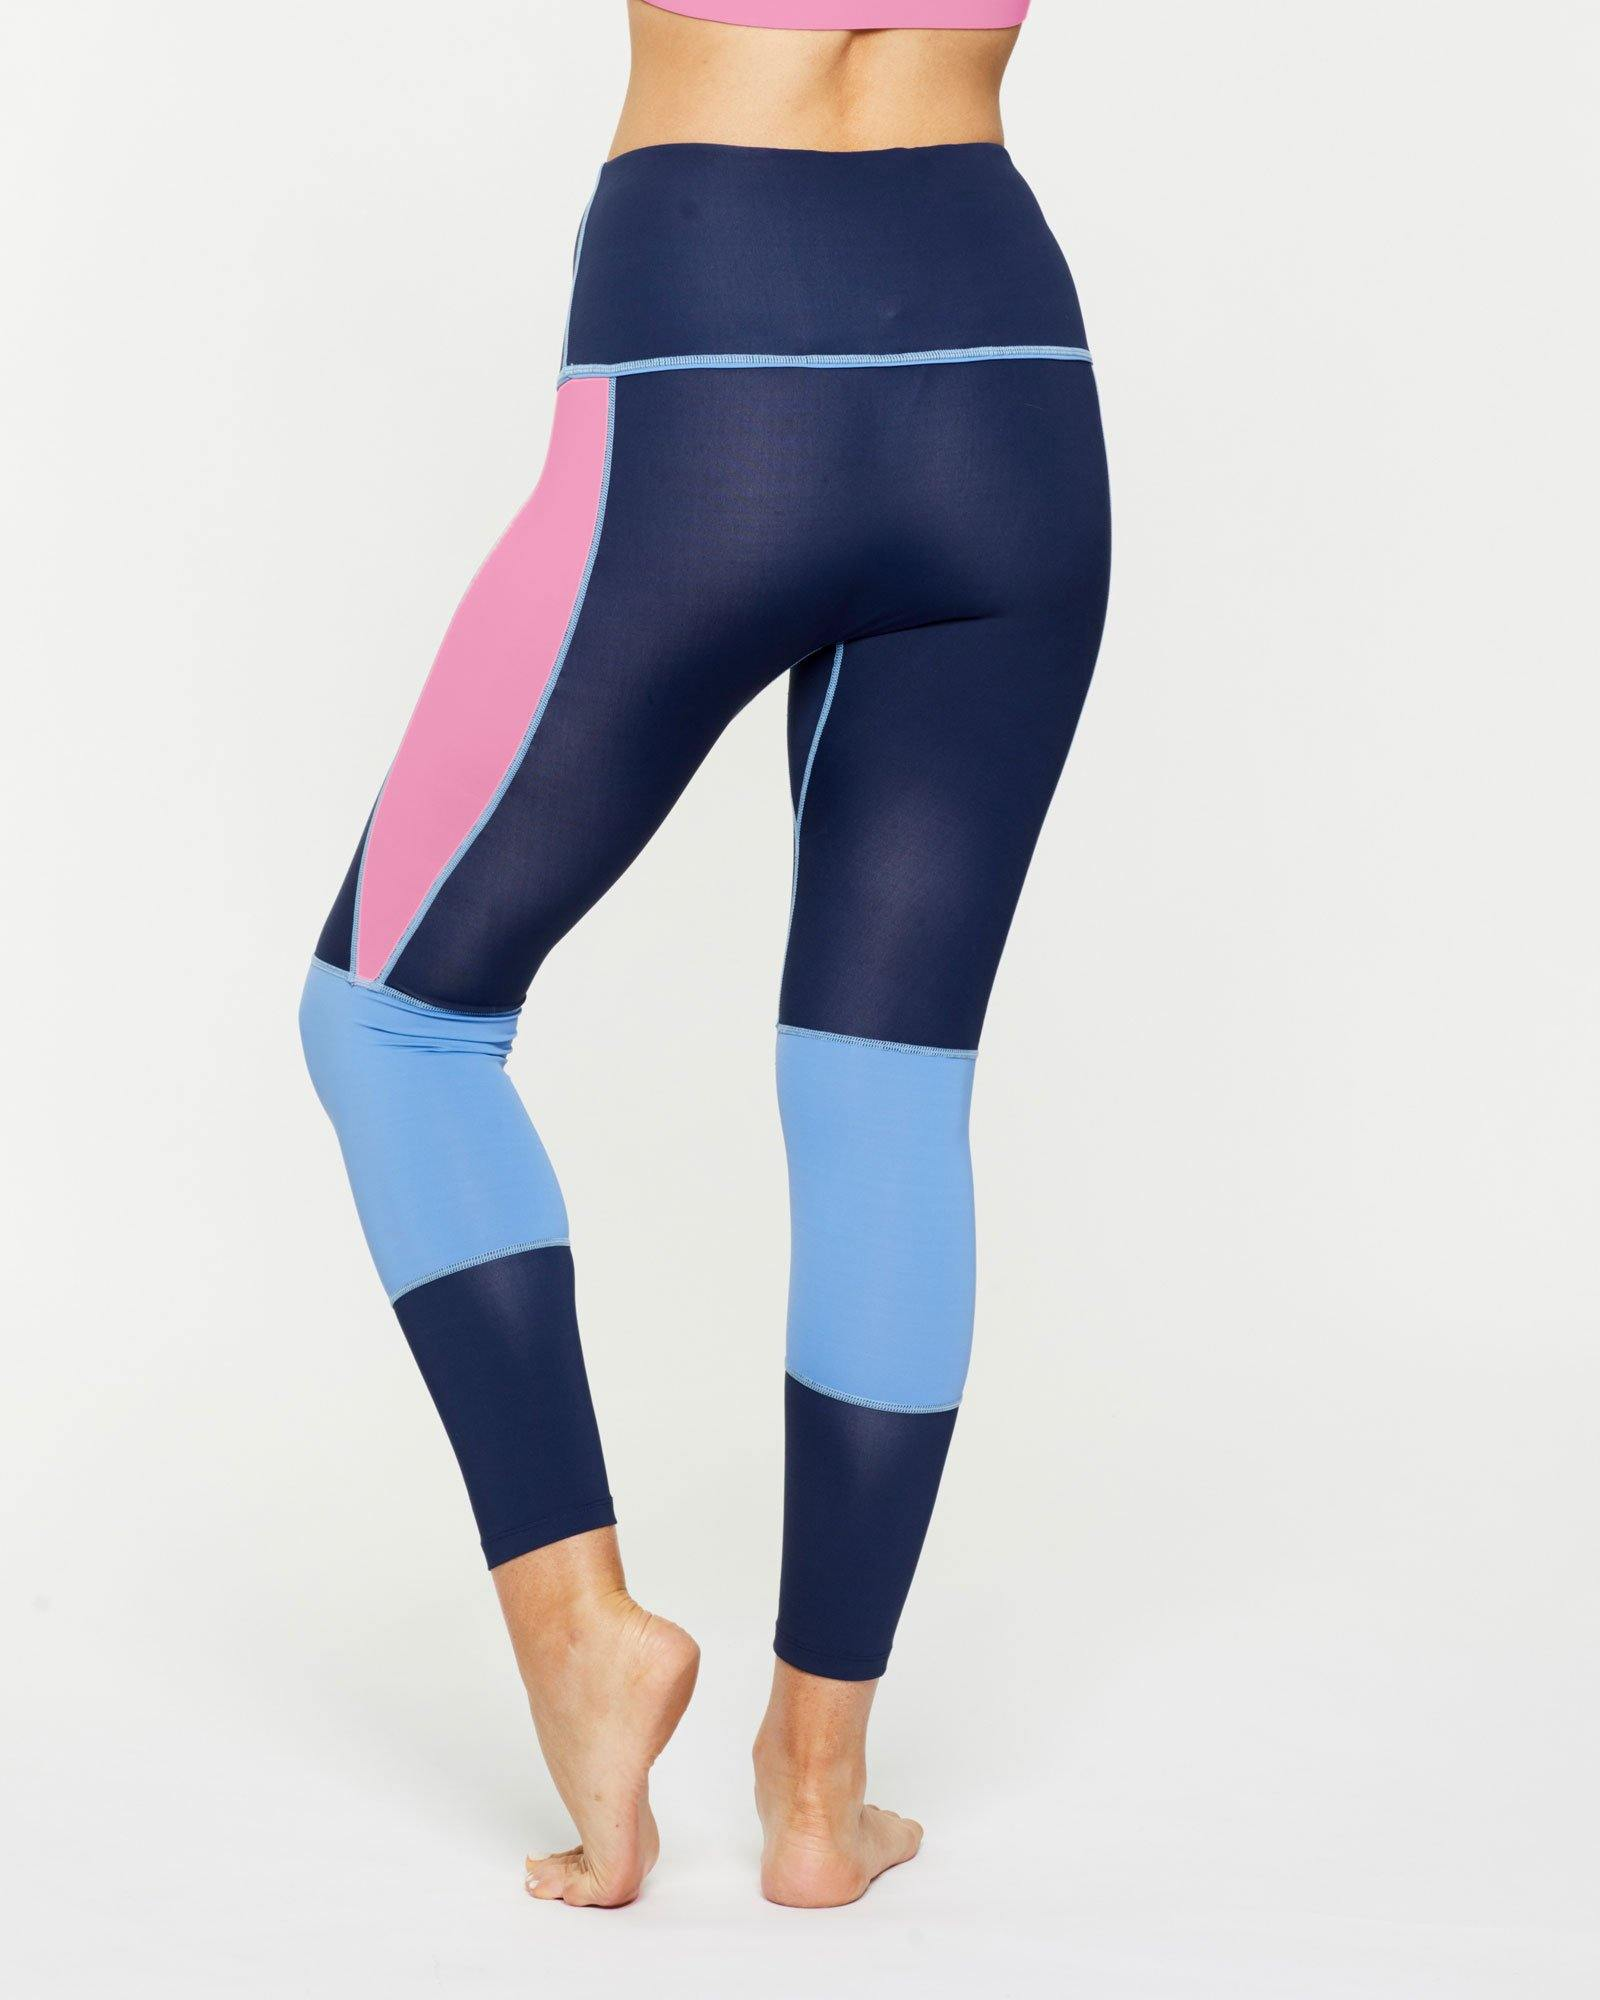 Femininely GRACILIS 7/8 HIGH WAISTED LEGGING Navy Blue WITH CONTRAST PANELS Sky blue and peony pink, back VIEW for pilates, barre, yoga, dance, gym-workouts